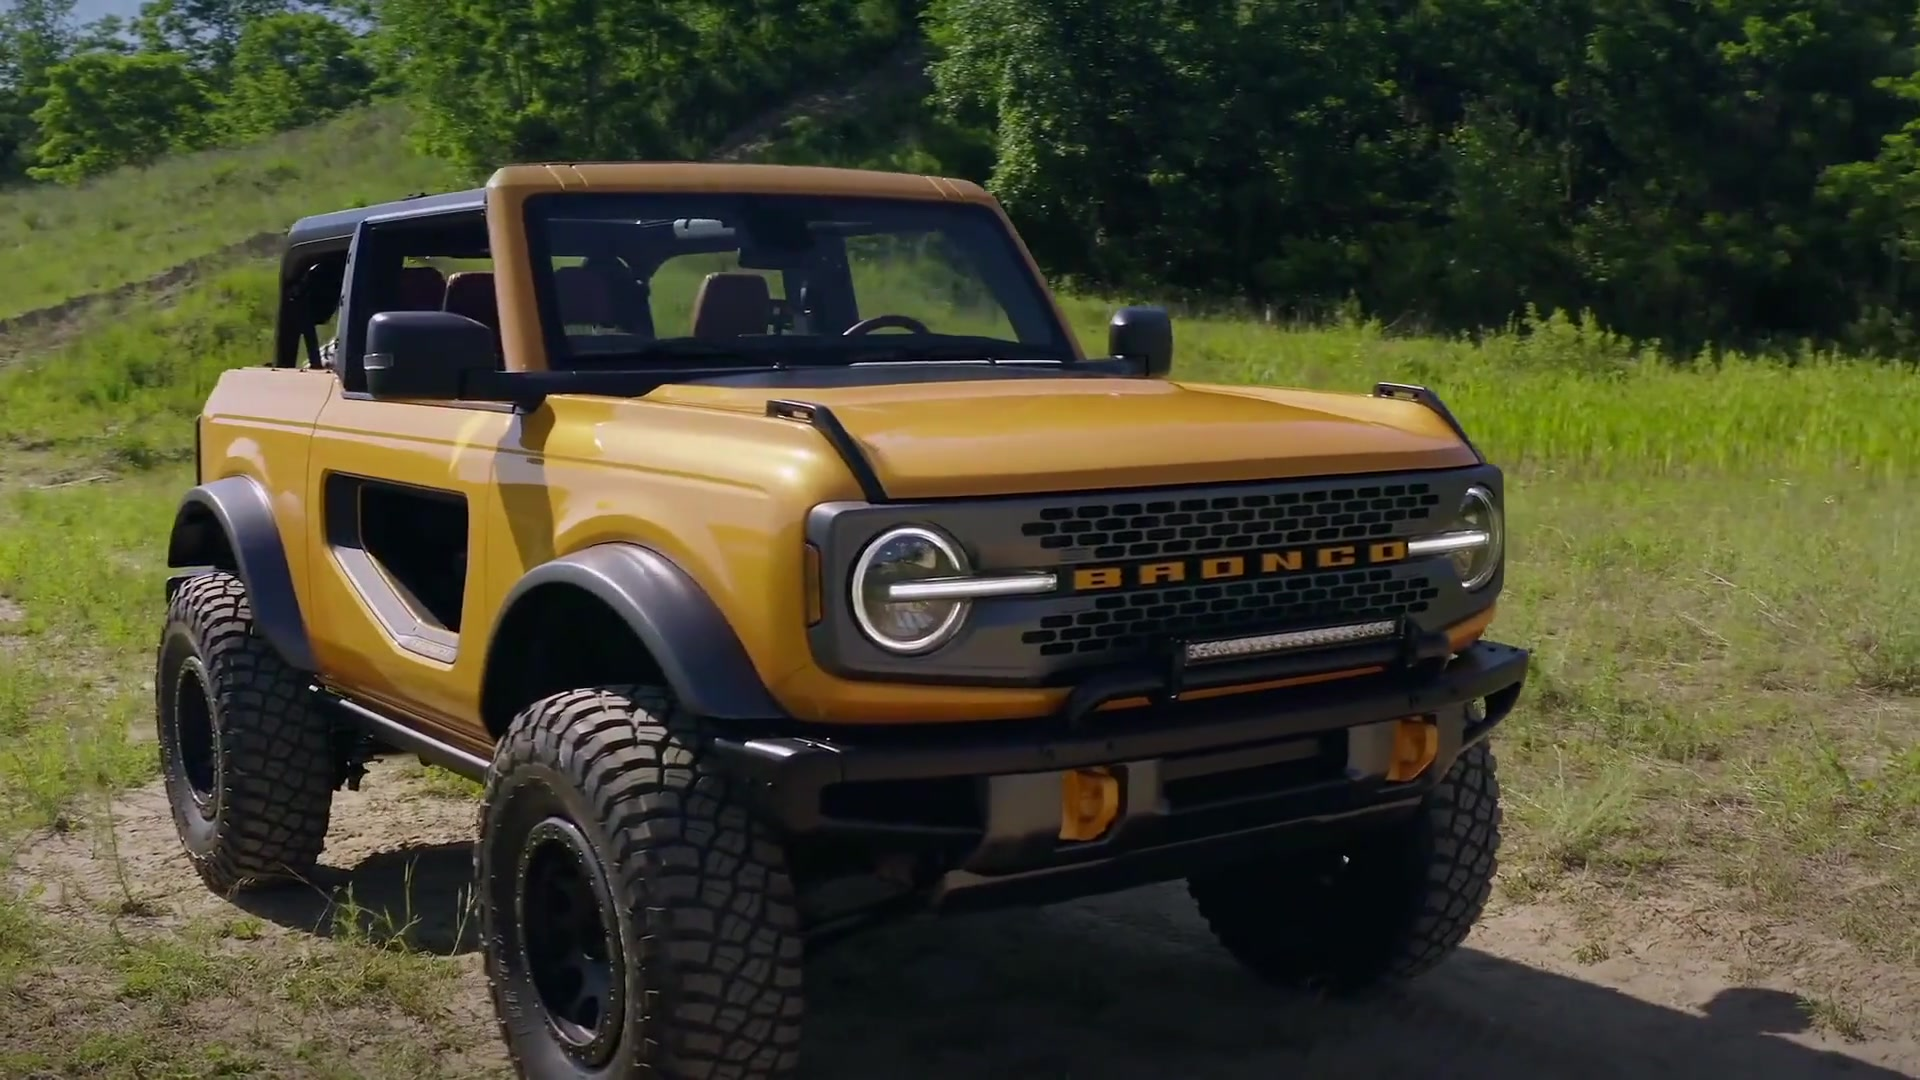 All-new 2021 Ford Bronco two-door and four-door Exterior Design